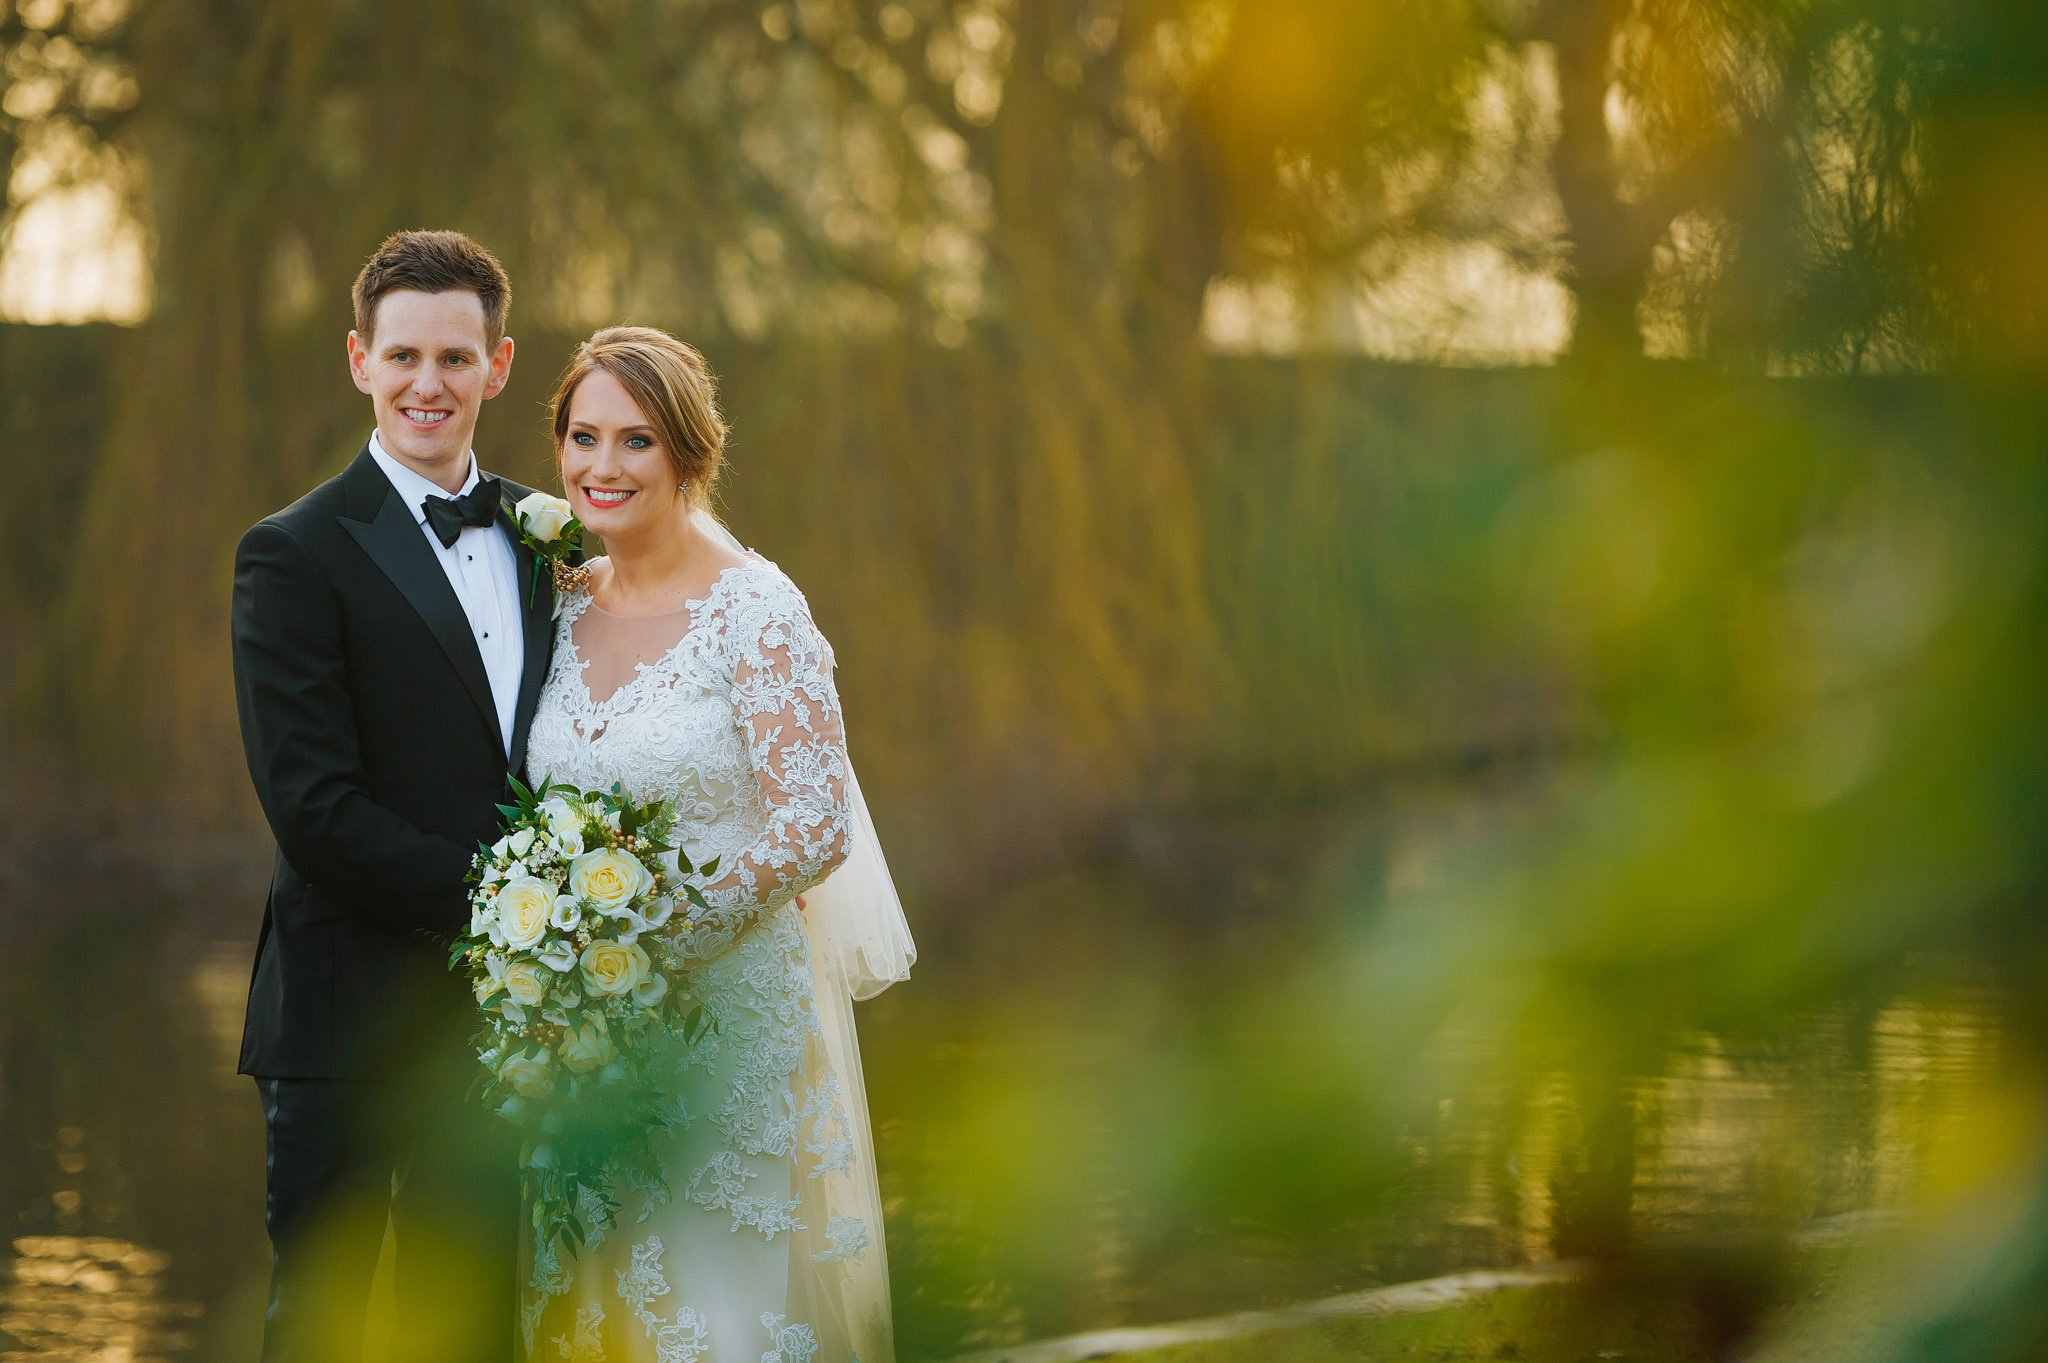 Coombe Abbey wedding in Coventry, Warwickshire - Sam + Matt 49